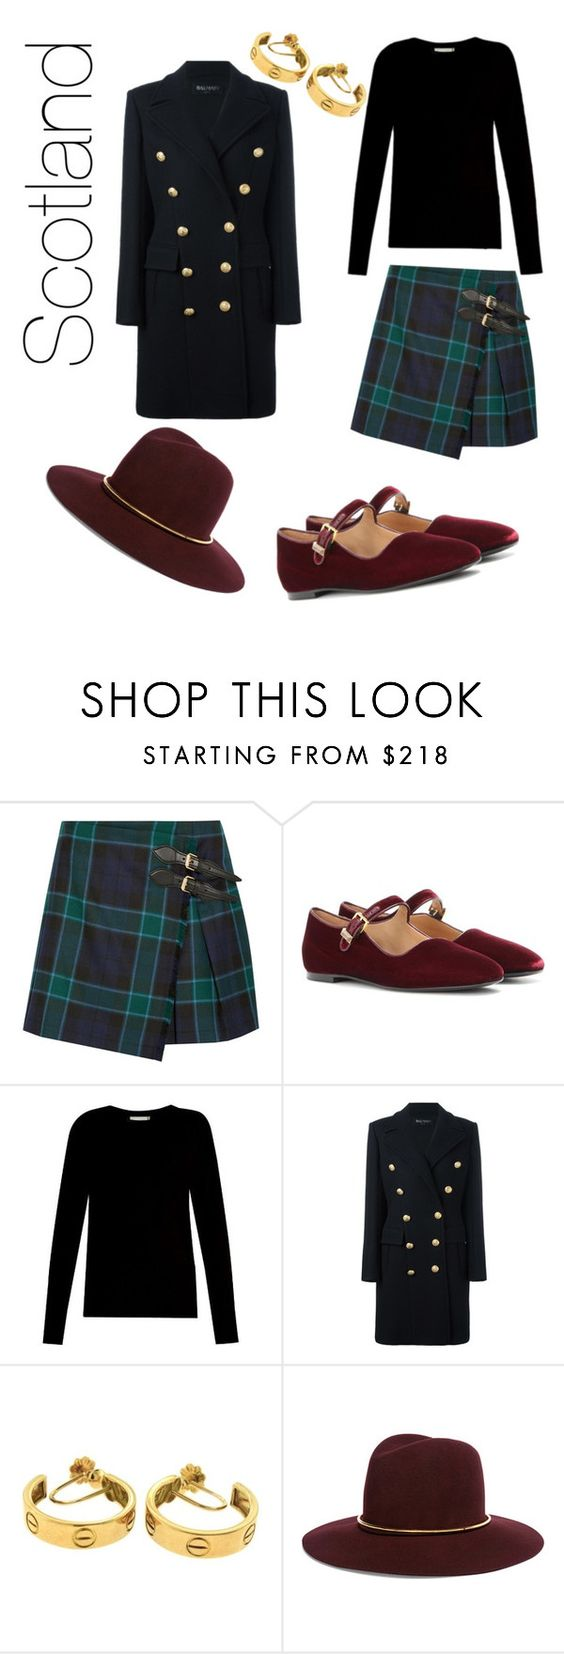 """""""Royal Trip To Scotland"""" by v-schlesinger ❤ liked on Polyvore featuring Burberry, The Row, Vince, Balmain, Cartier and Janessa Leone"""